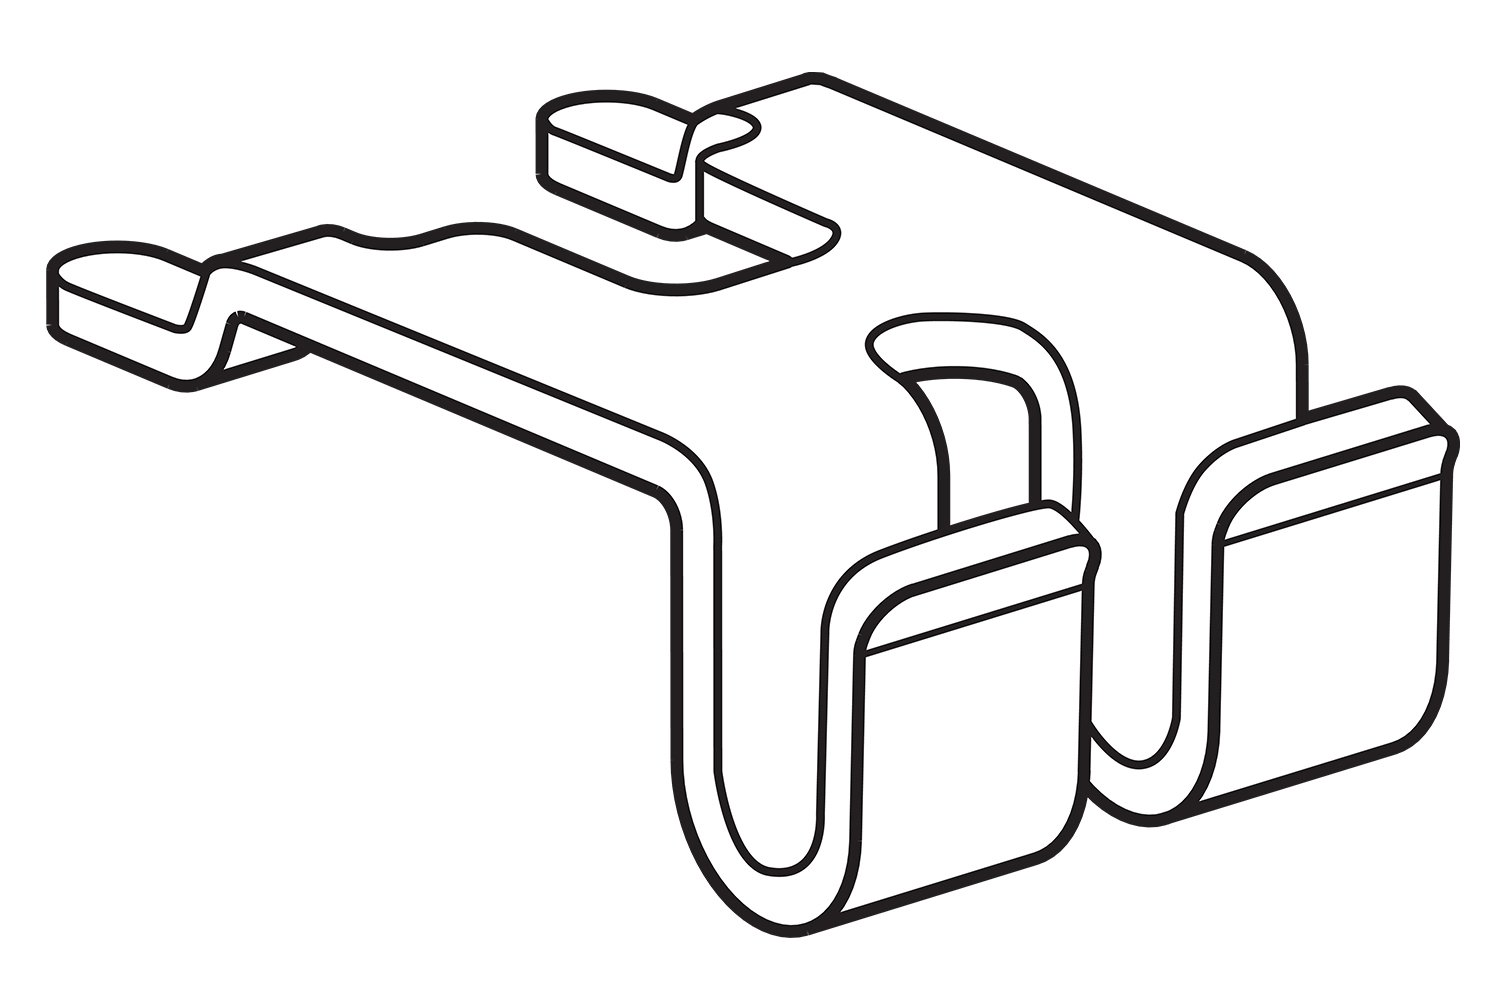 FFR Merchandising 8304293200 Shelf Attachment for Wire Power Wing Pack of 125 Self-Mount